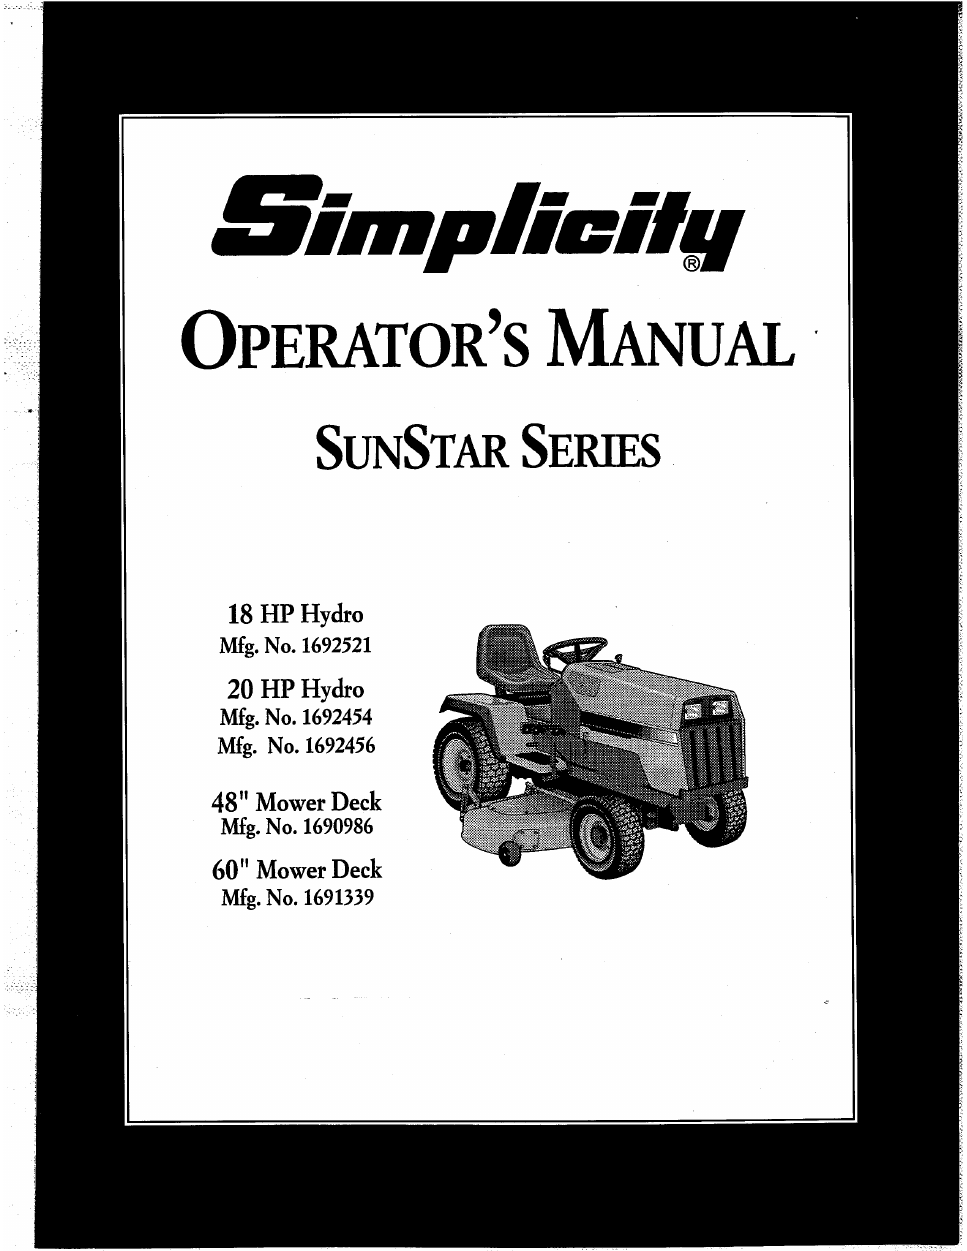 Wiring Diagram For Simplicity 9523 Page 6 And Tractor 1692593 Diagrams Source 1692521 Operator S Manual Free Pdf 36 Pages Rh Manualagent Com